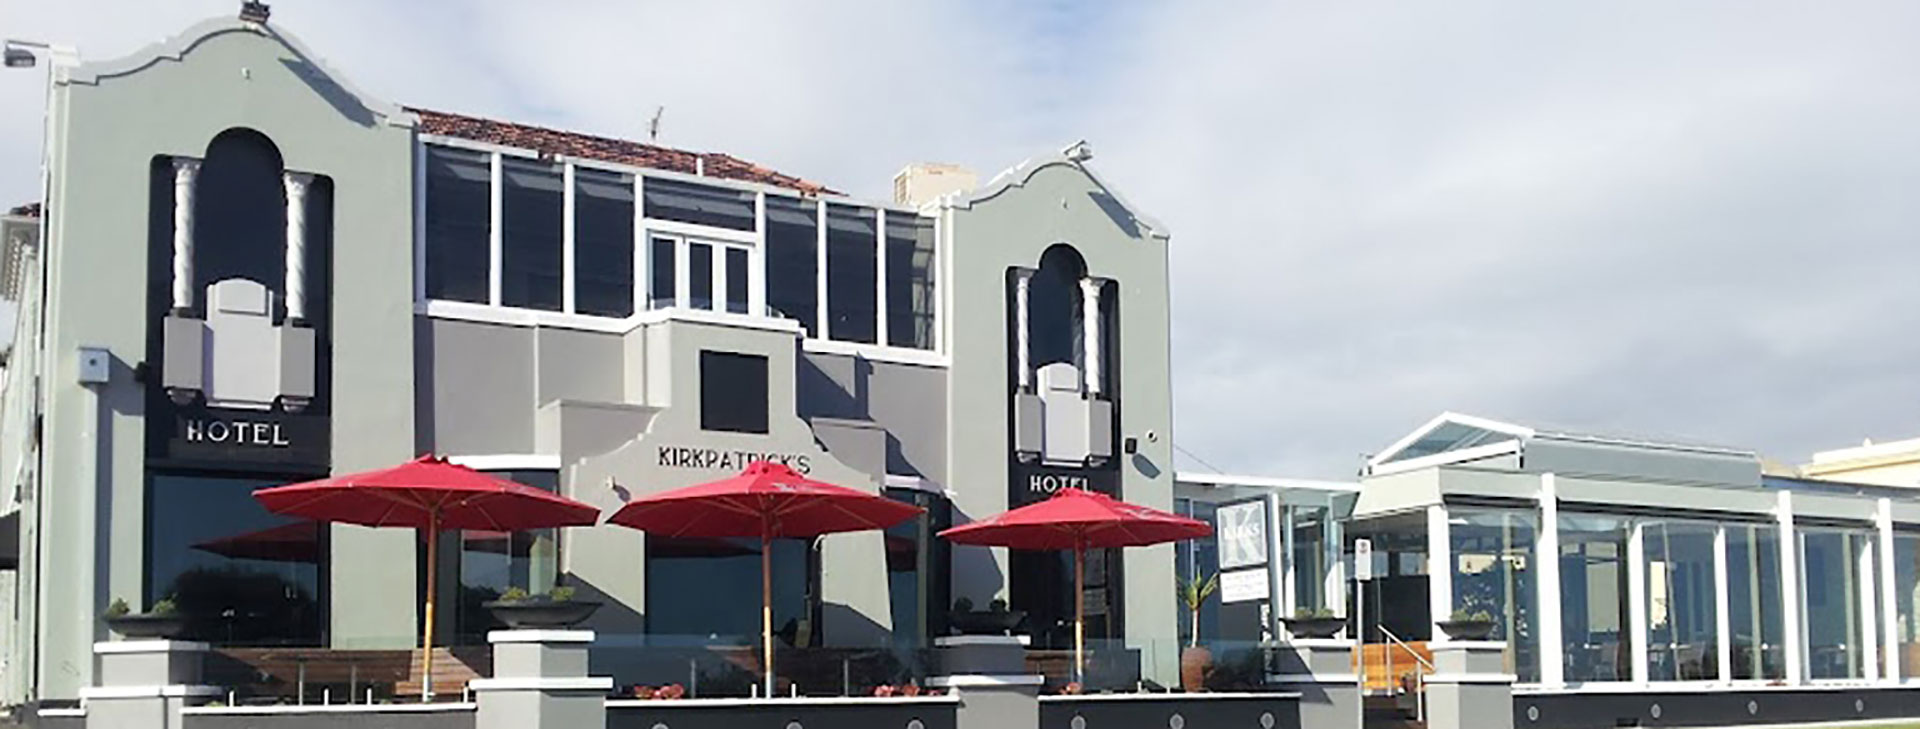 kirks hotel mornington peninsula